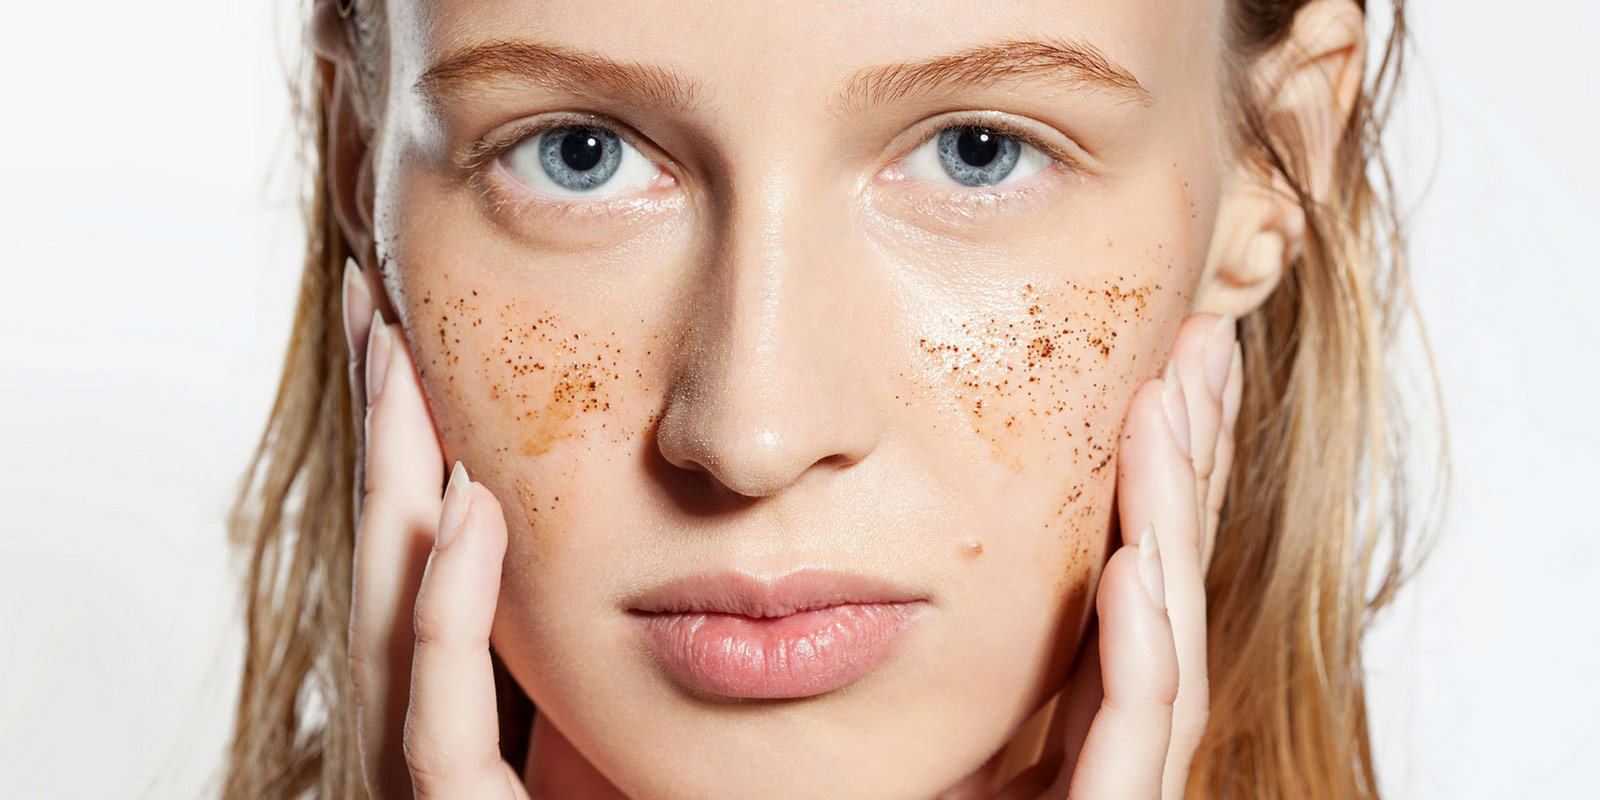 6 Common Skincare Mistakes and How to Fix Them